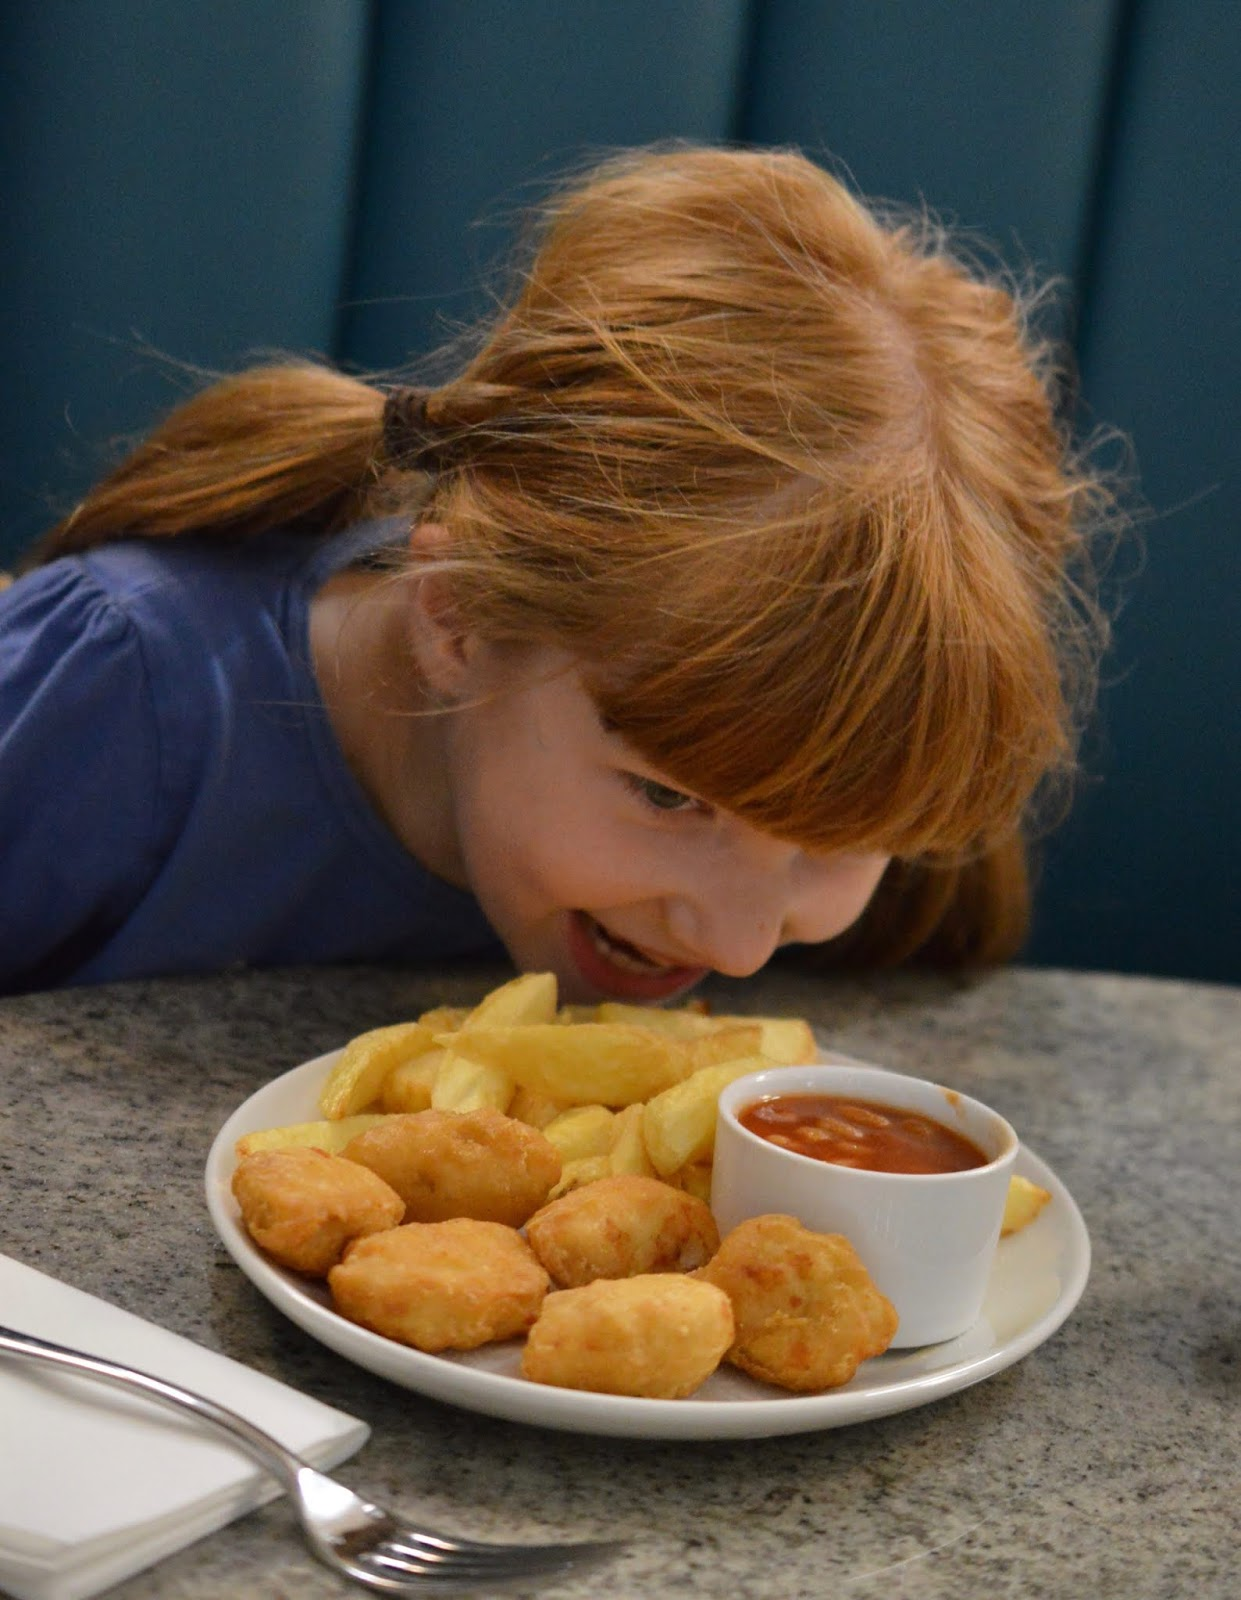 Fish and Chips with Kids at Trenchers, Spanish City - A Review - kids chicken nuggets and chips